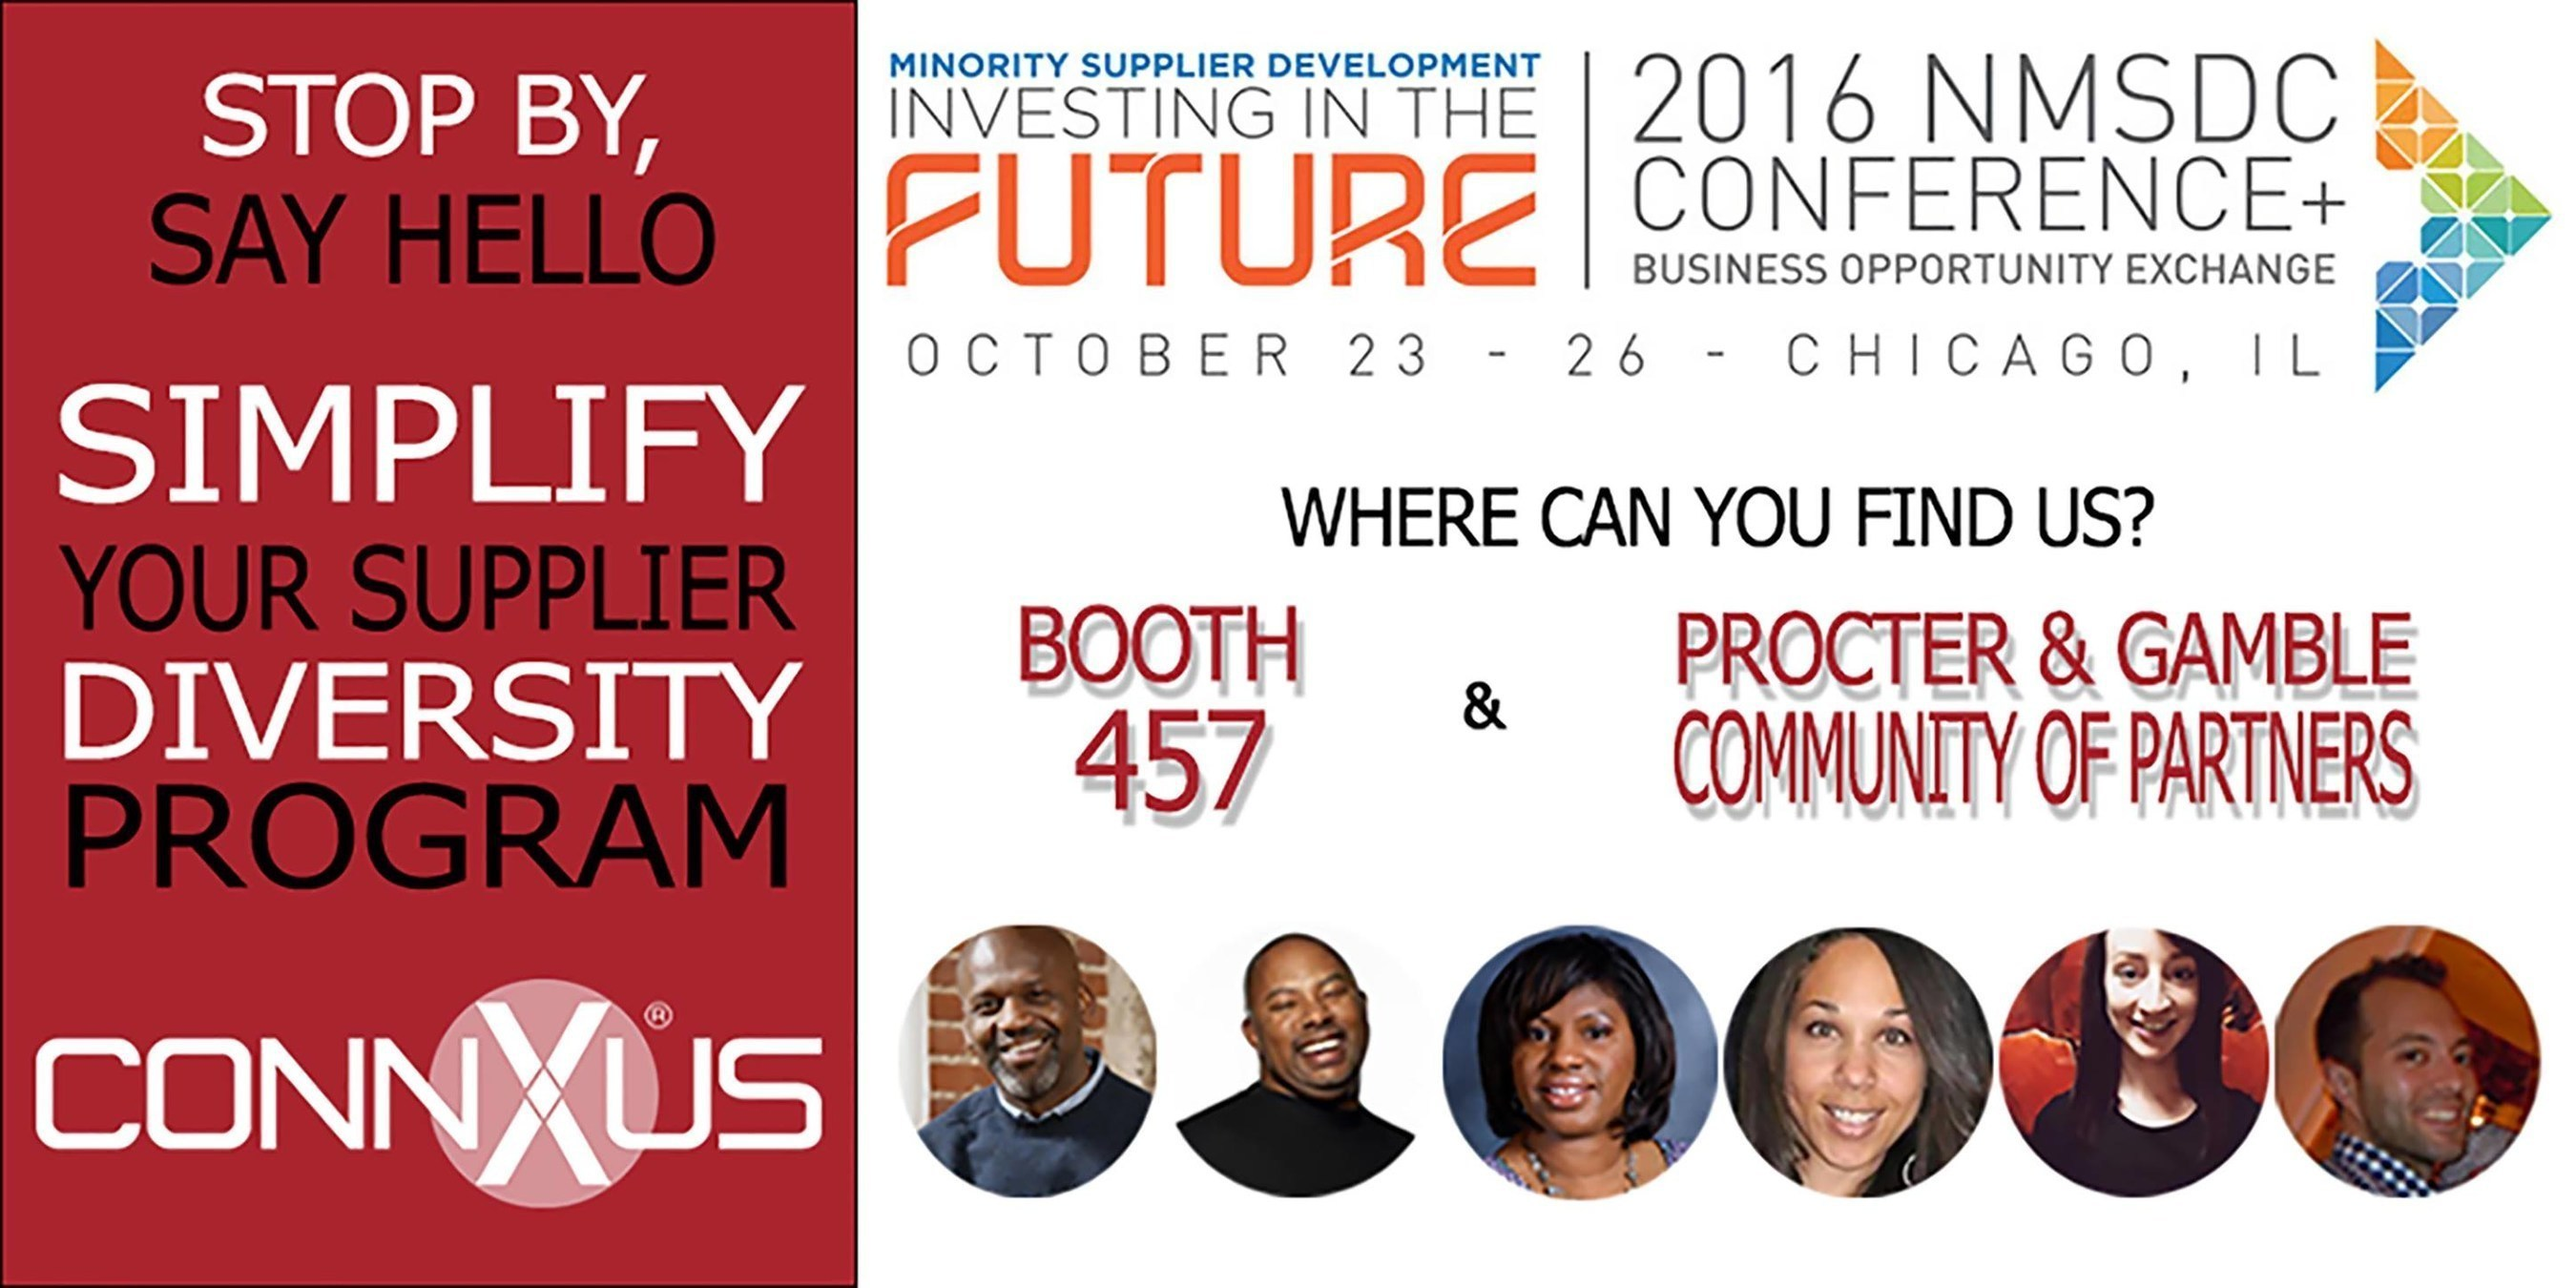 ConnXus Partners with P&G for National Minority Supplier Development Council Conference in Chicago